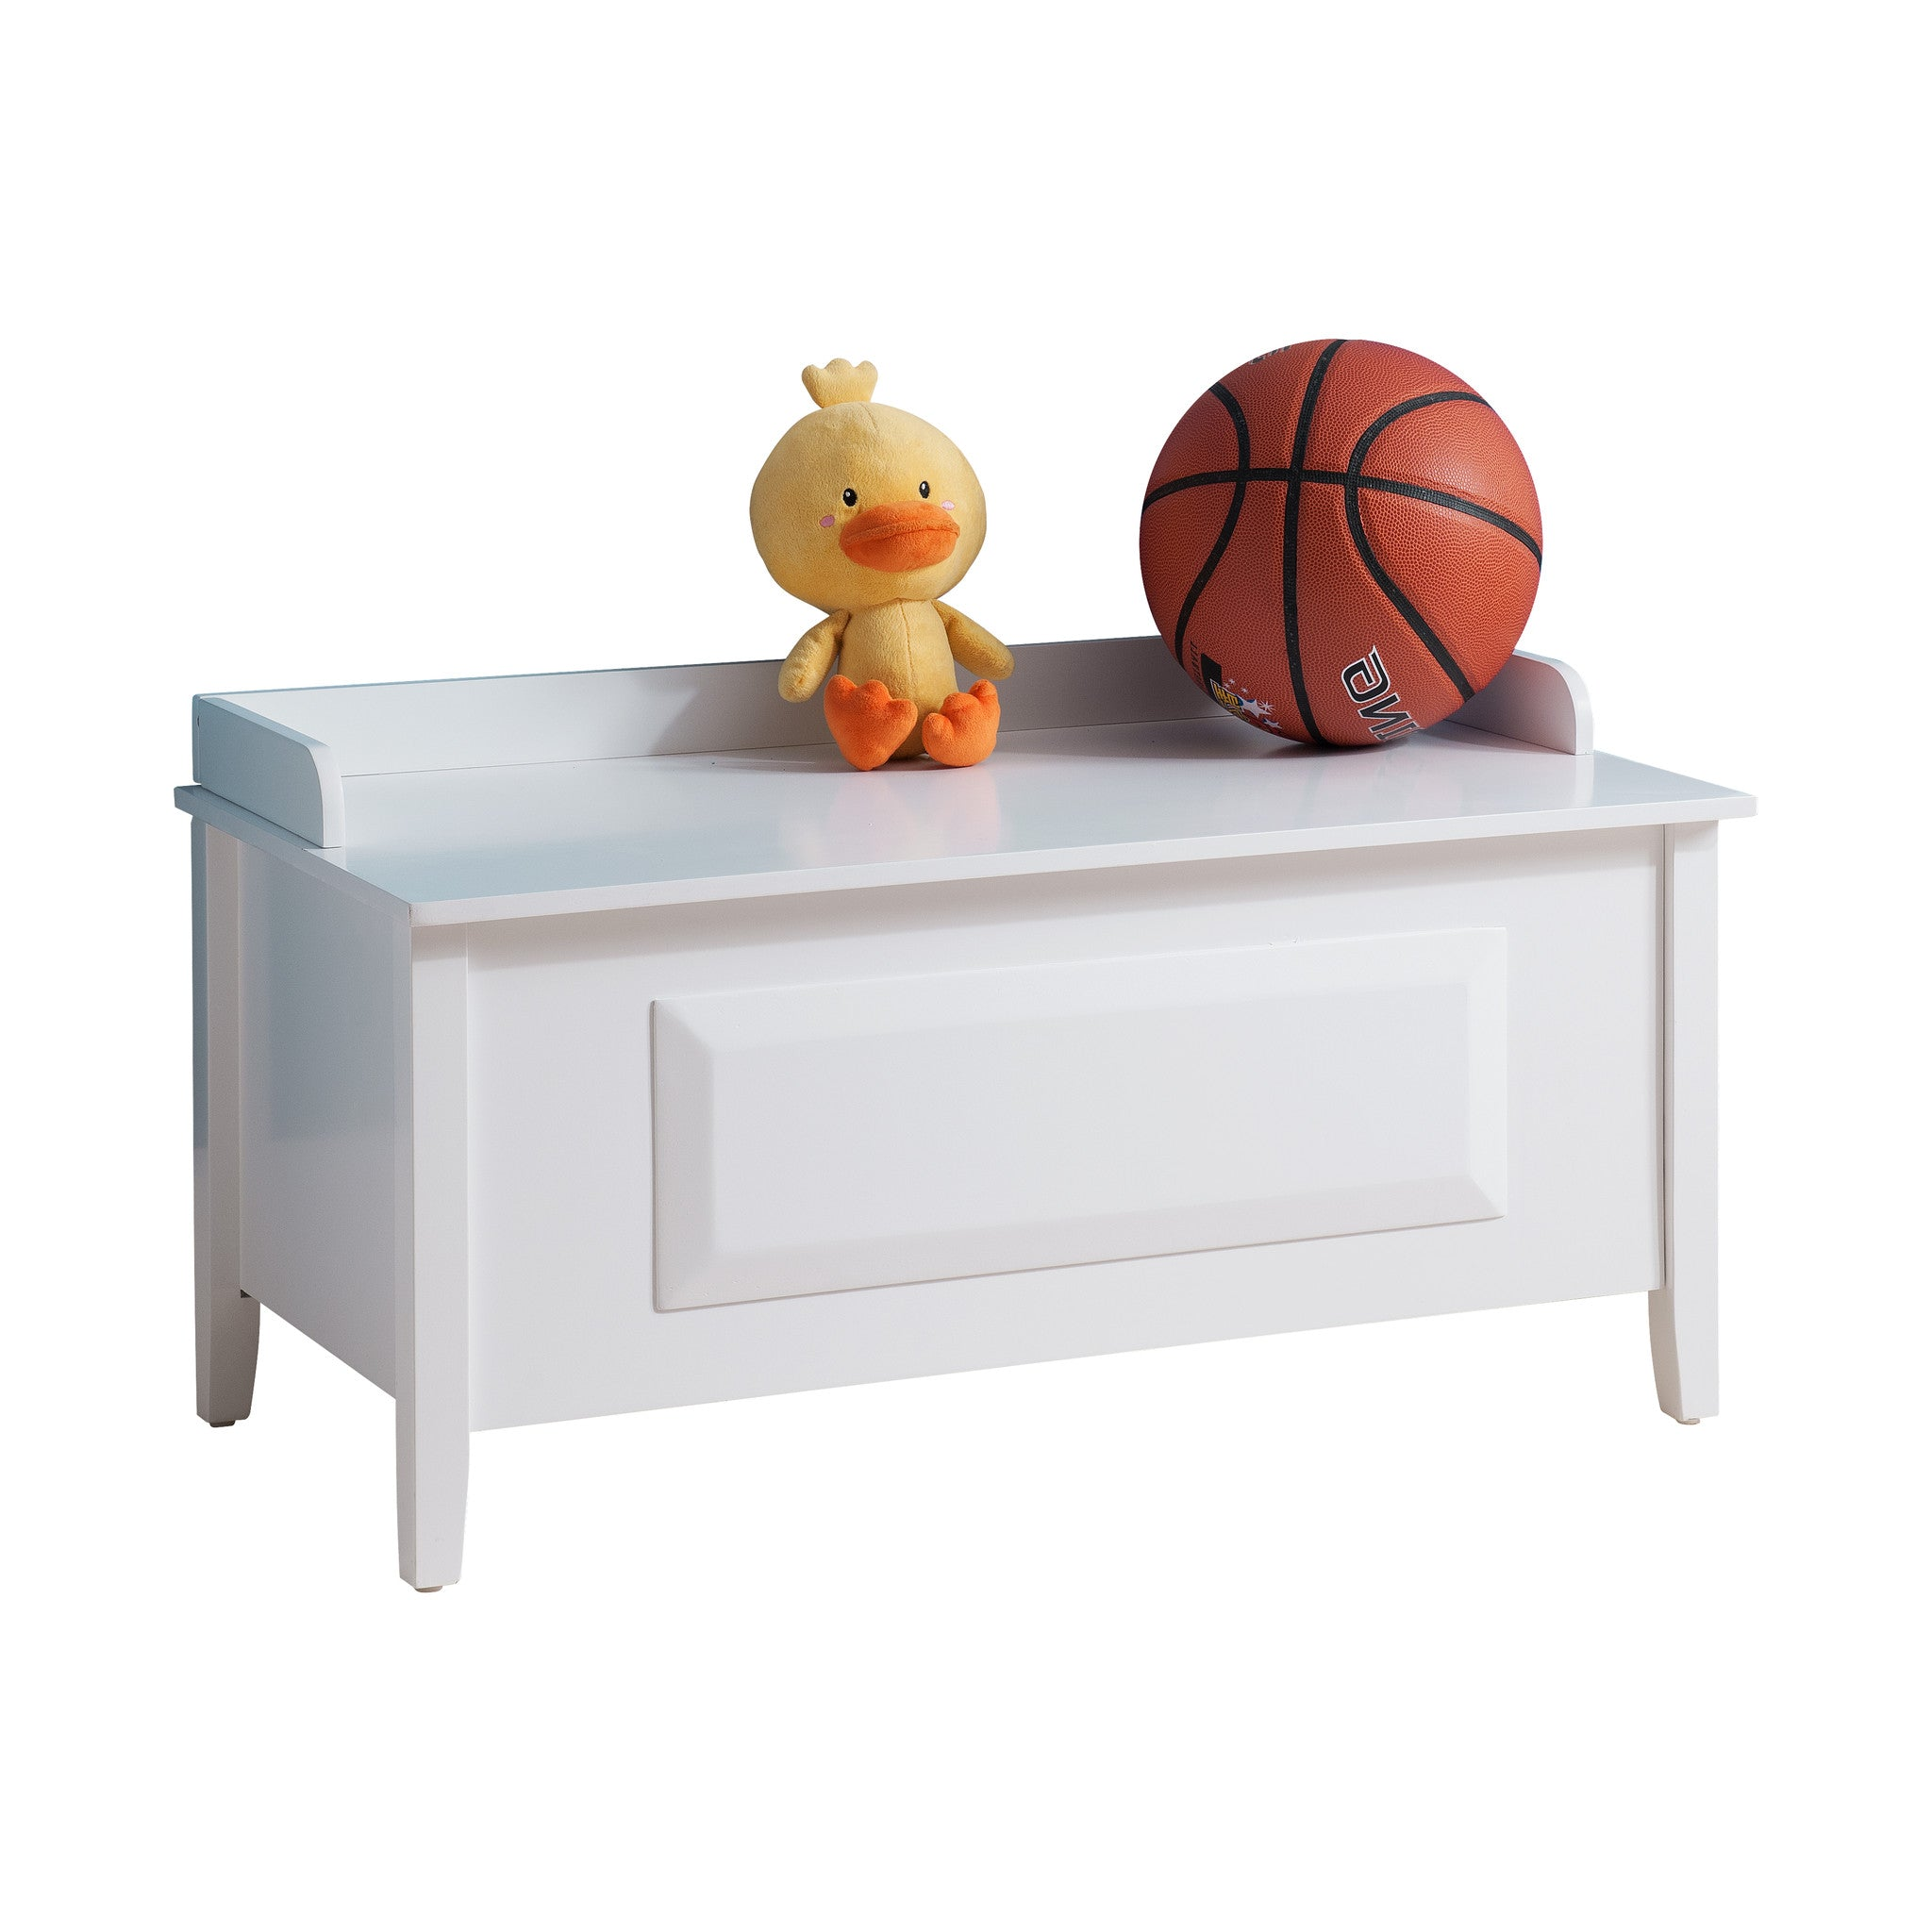 storage box wood toy wooden for a insight ikea natural hol solid material bench durable table hd